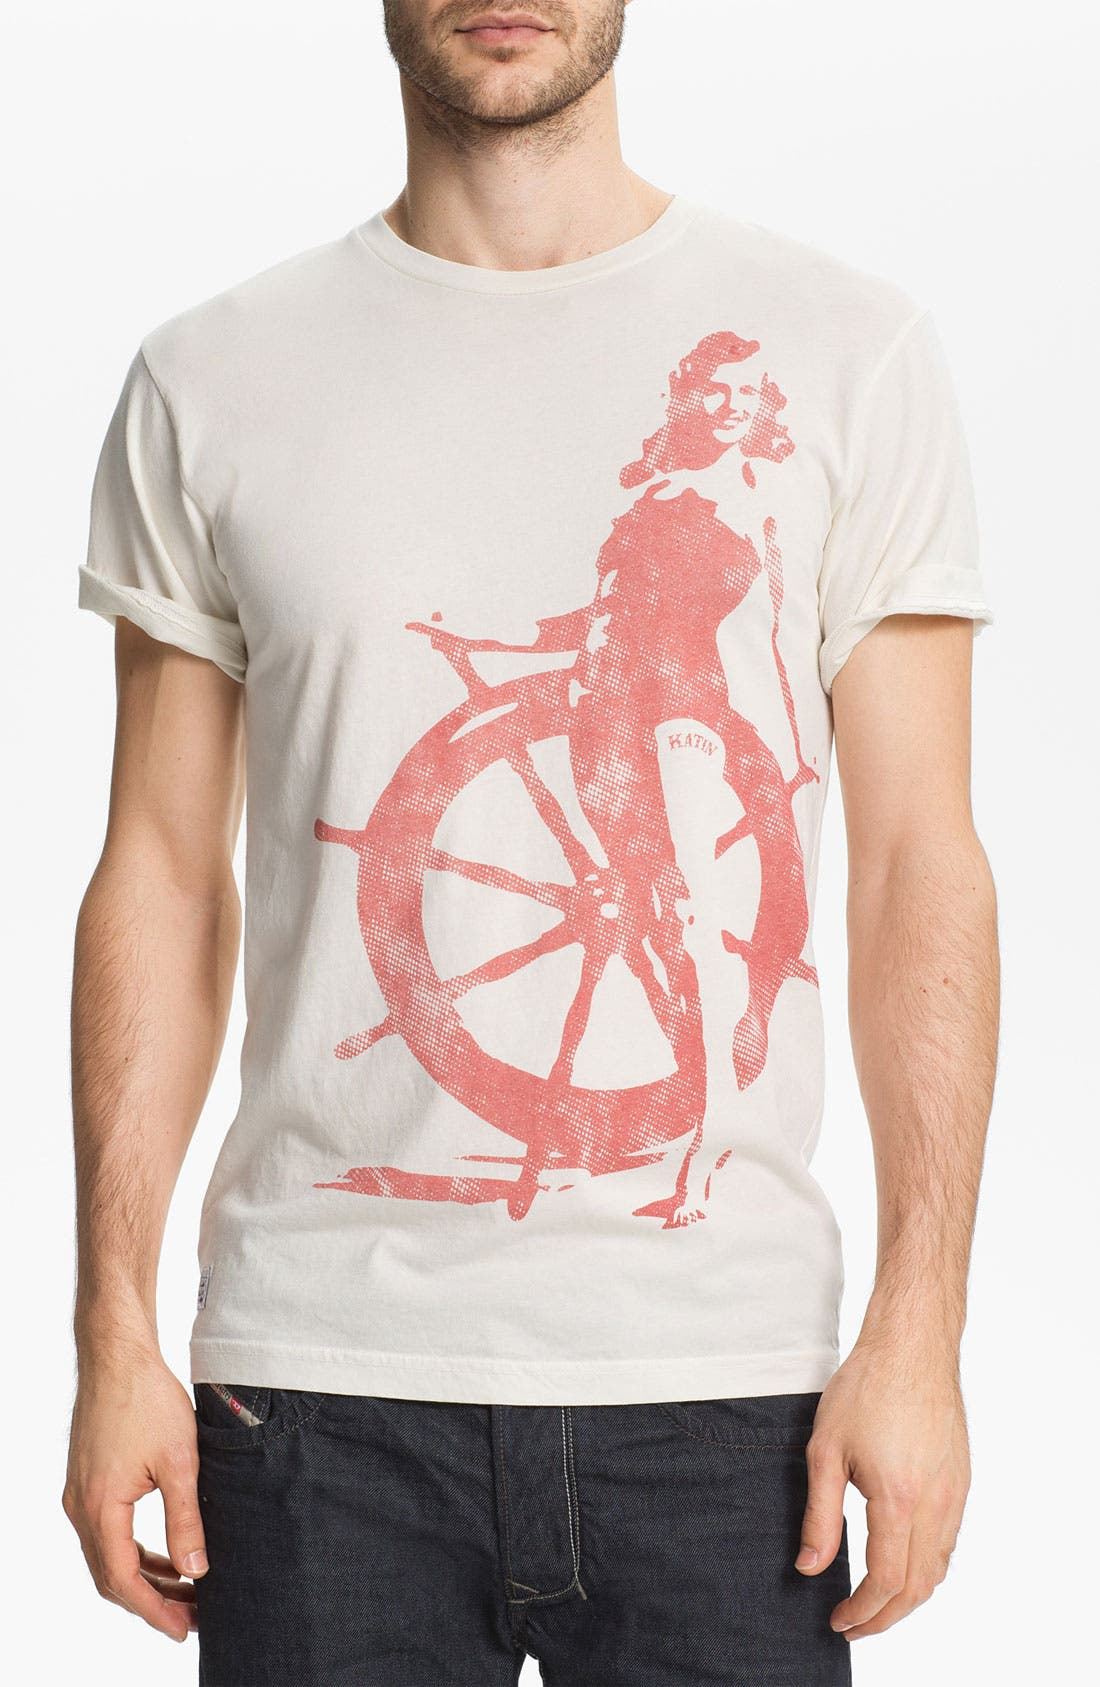 Alternate Image 1 Selected - Katin 'Wench' Graphic T-Shirt